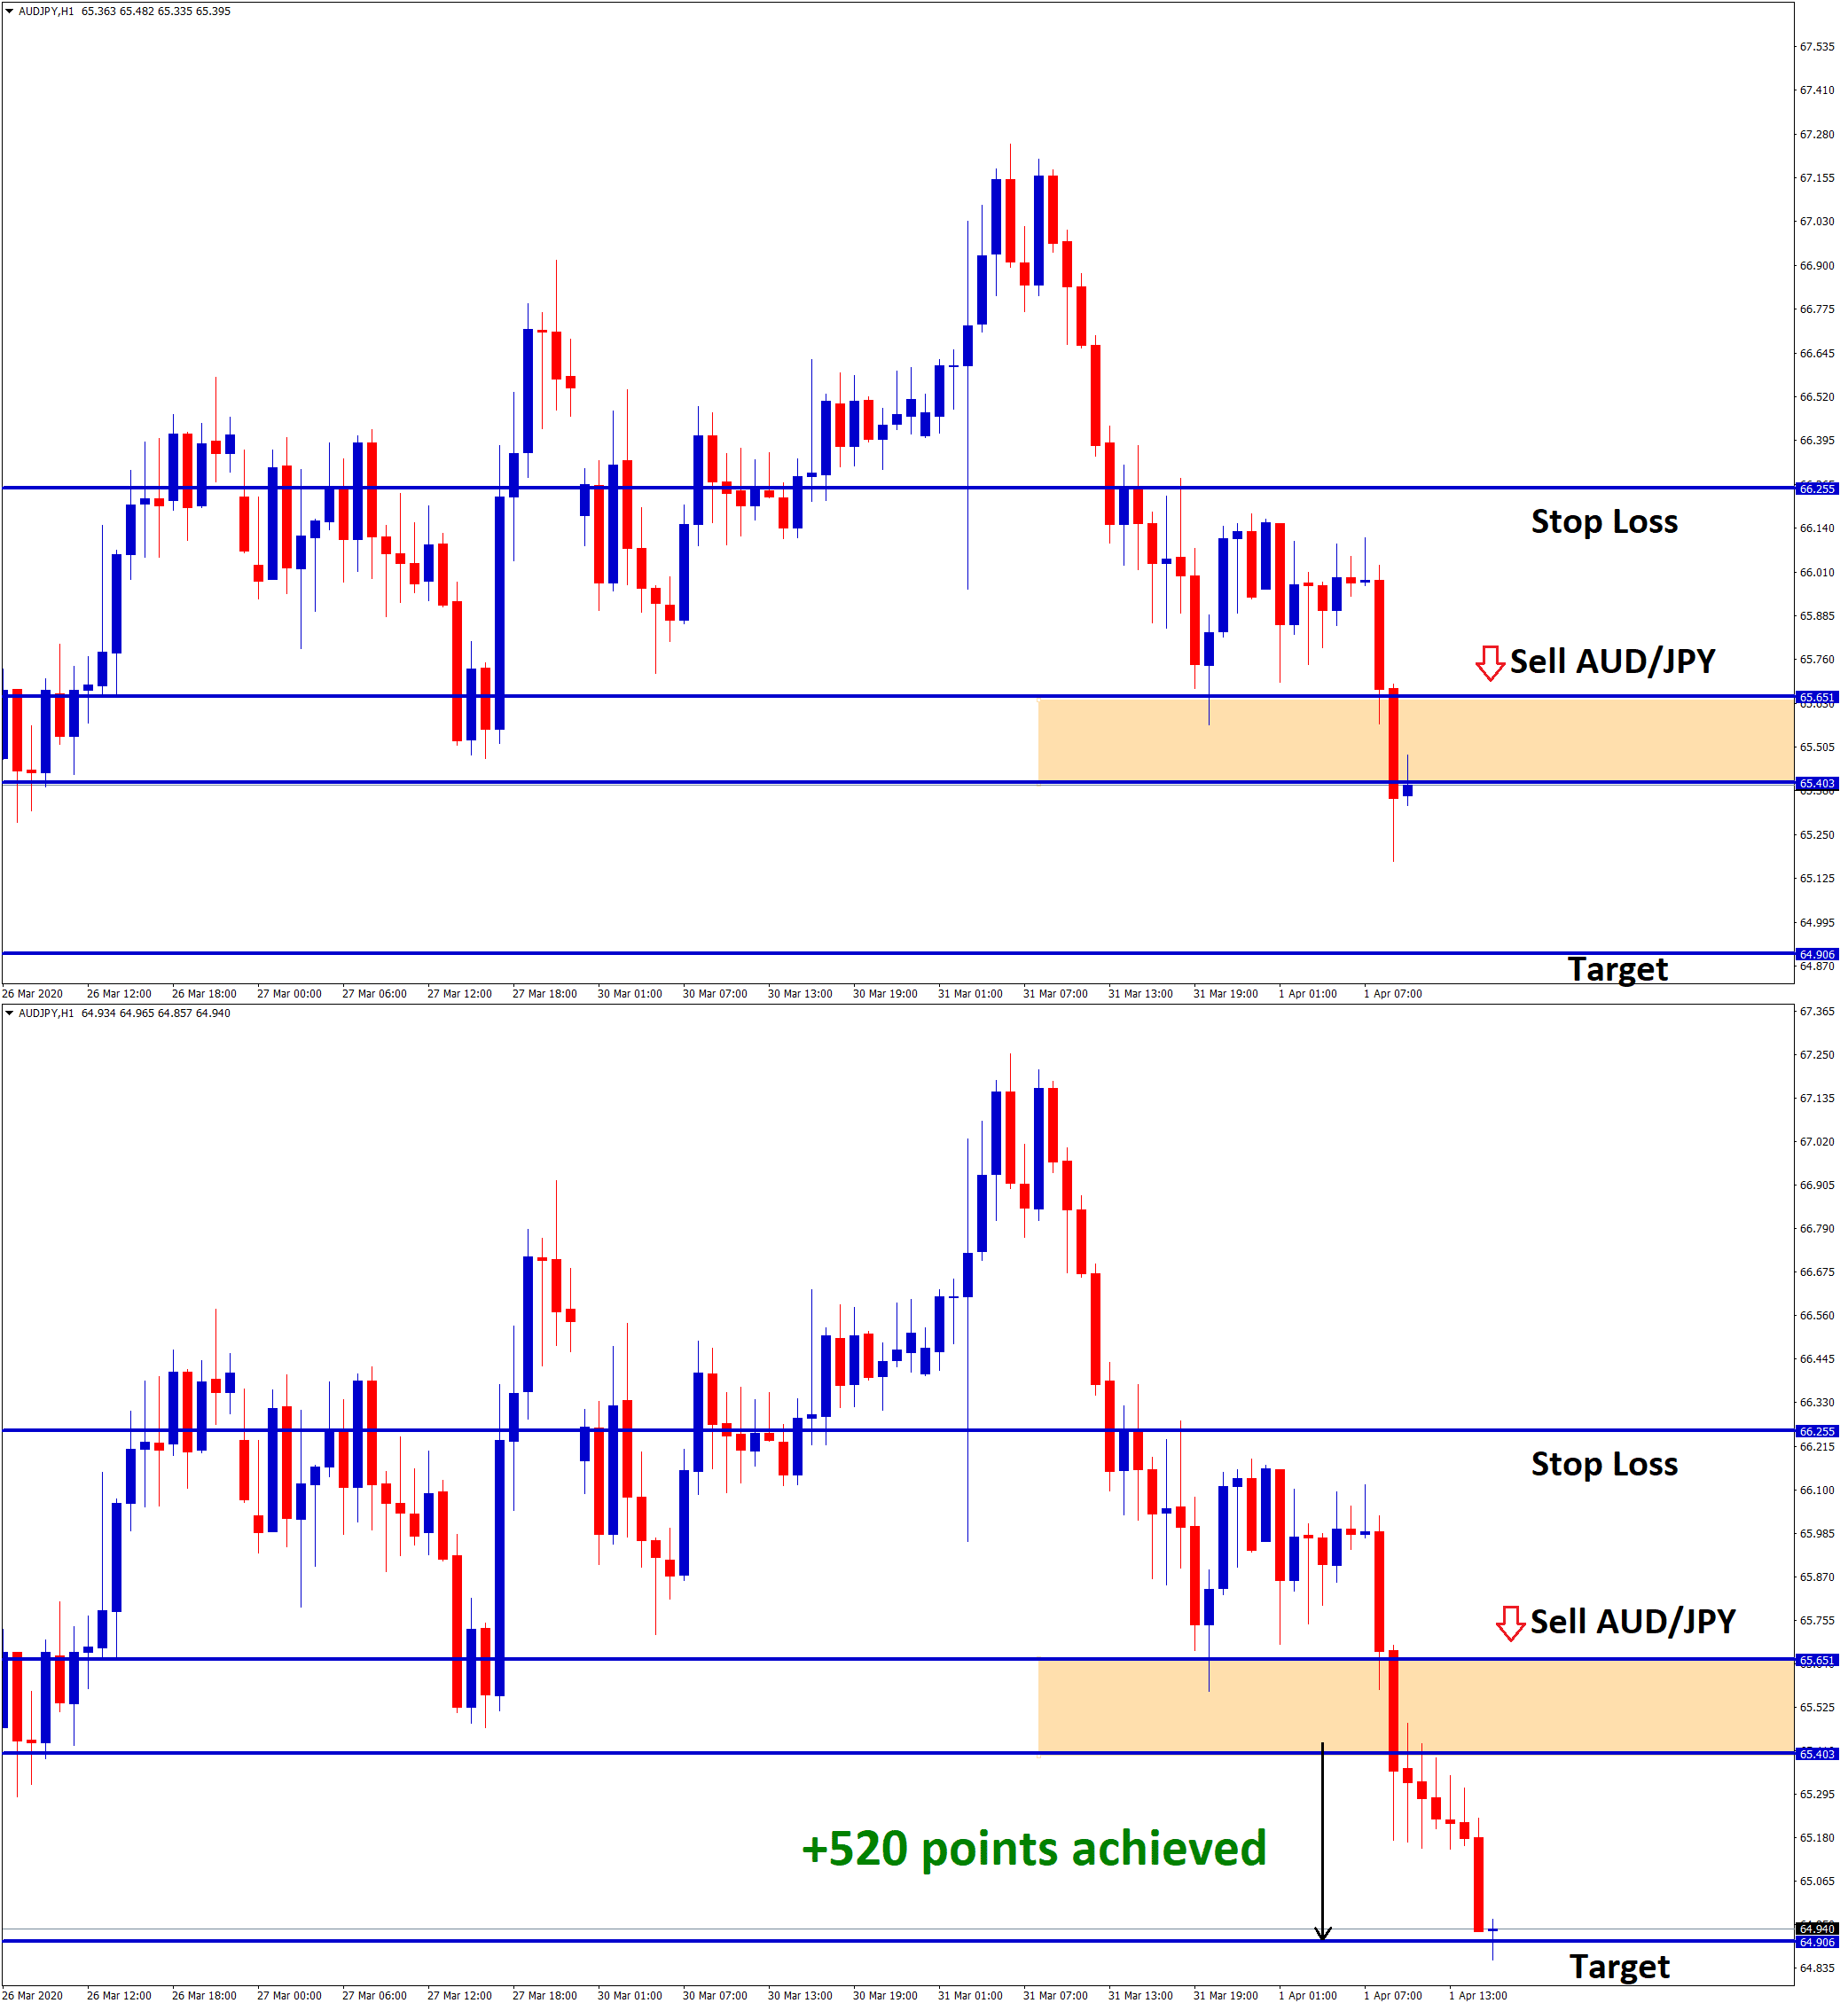 Sell aud jpy signal reached 52 pips profit